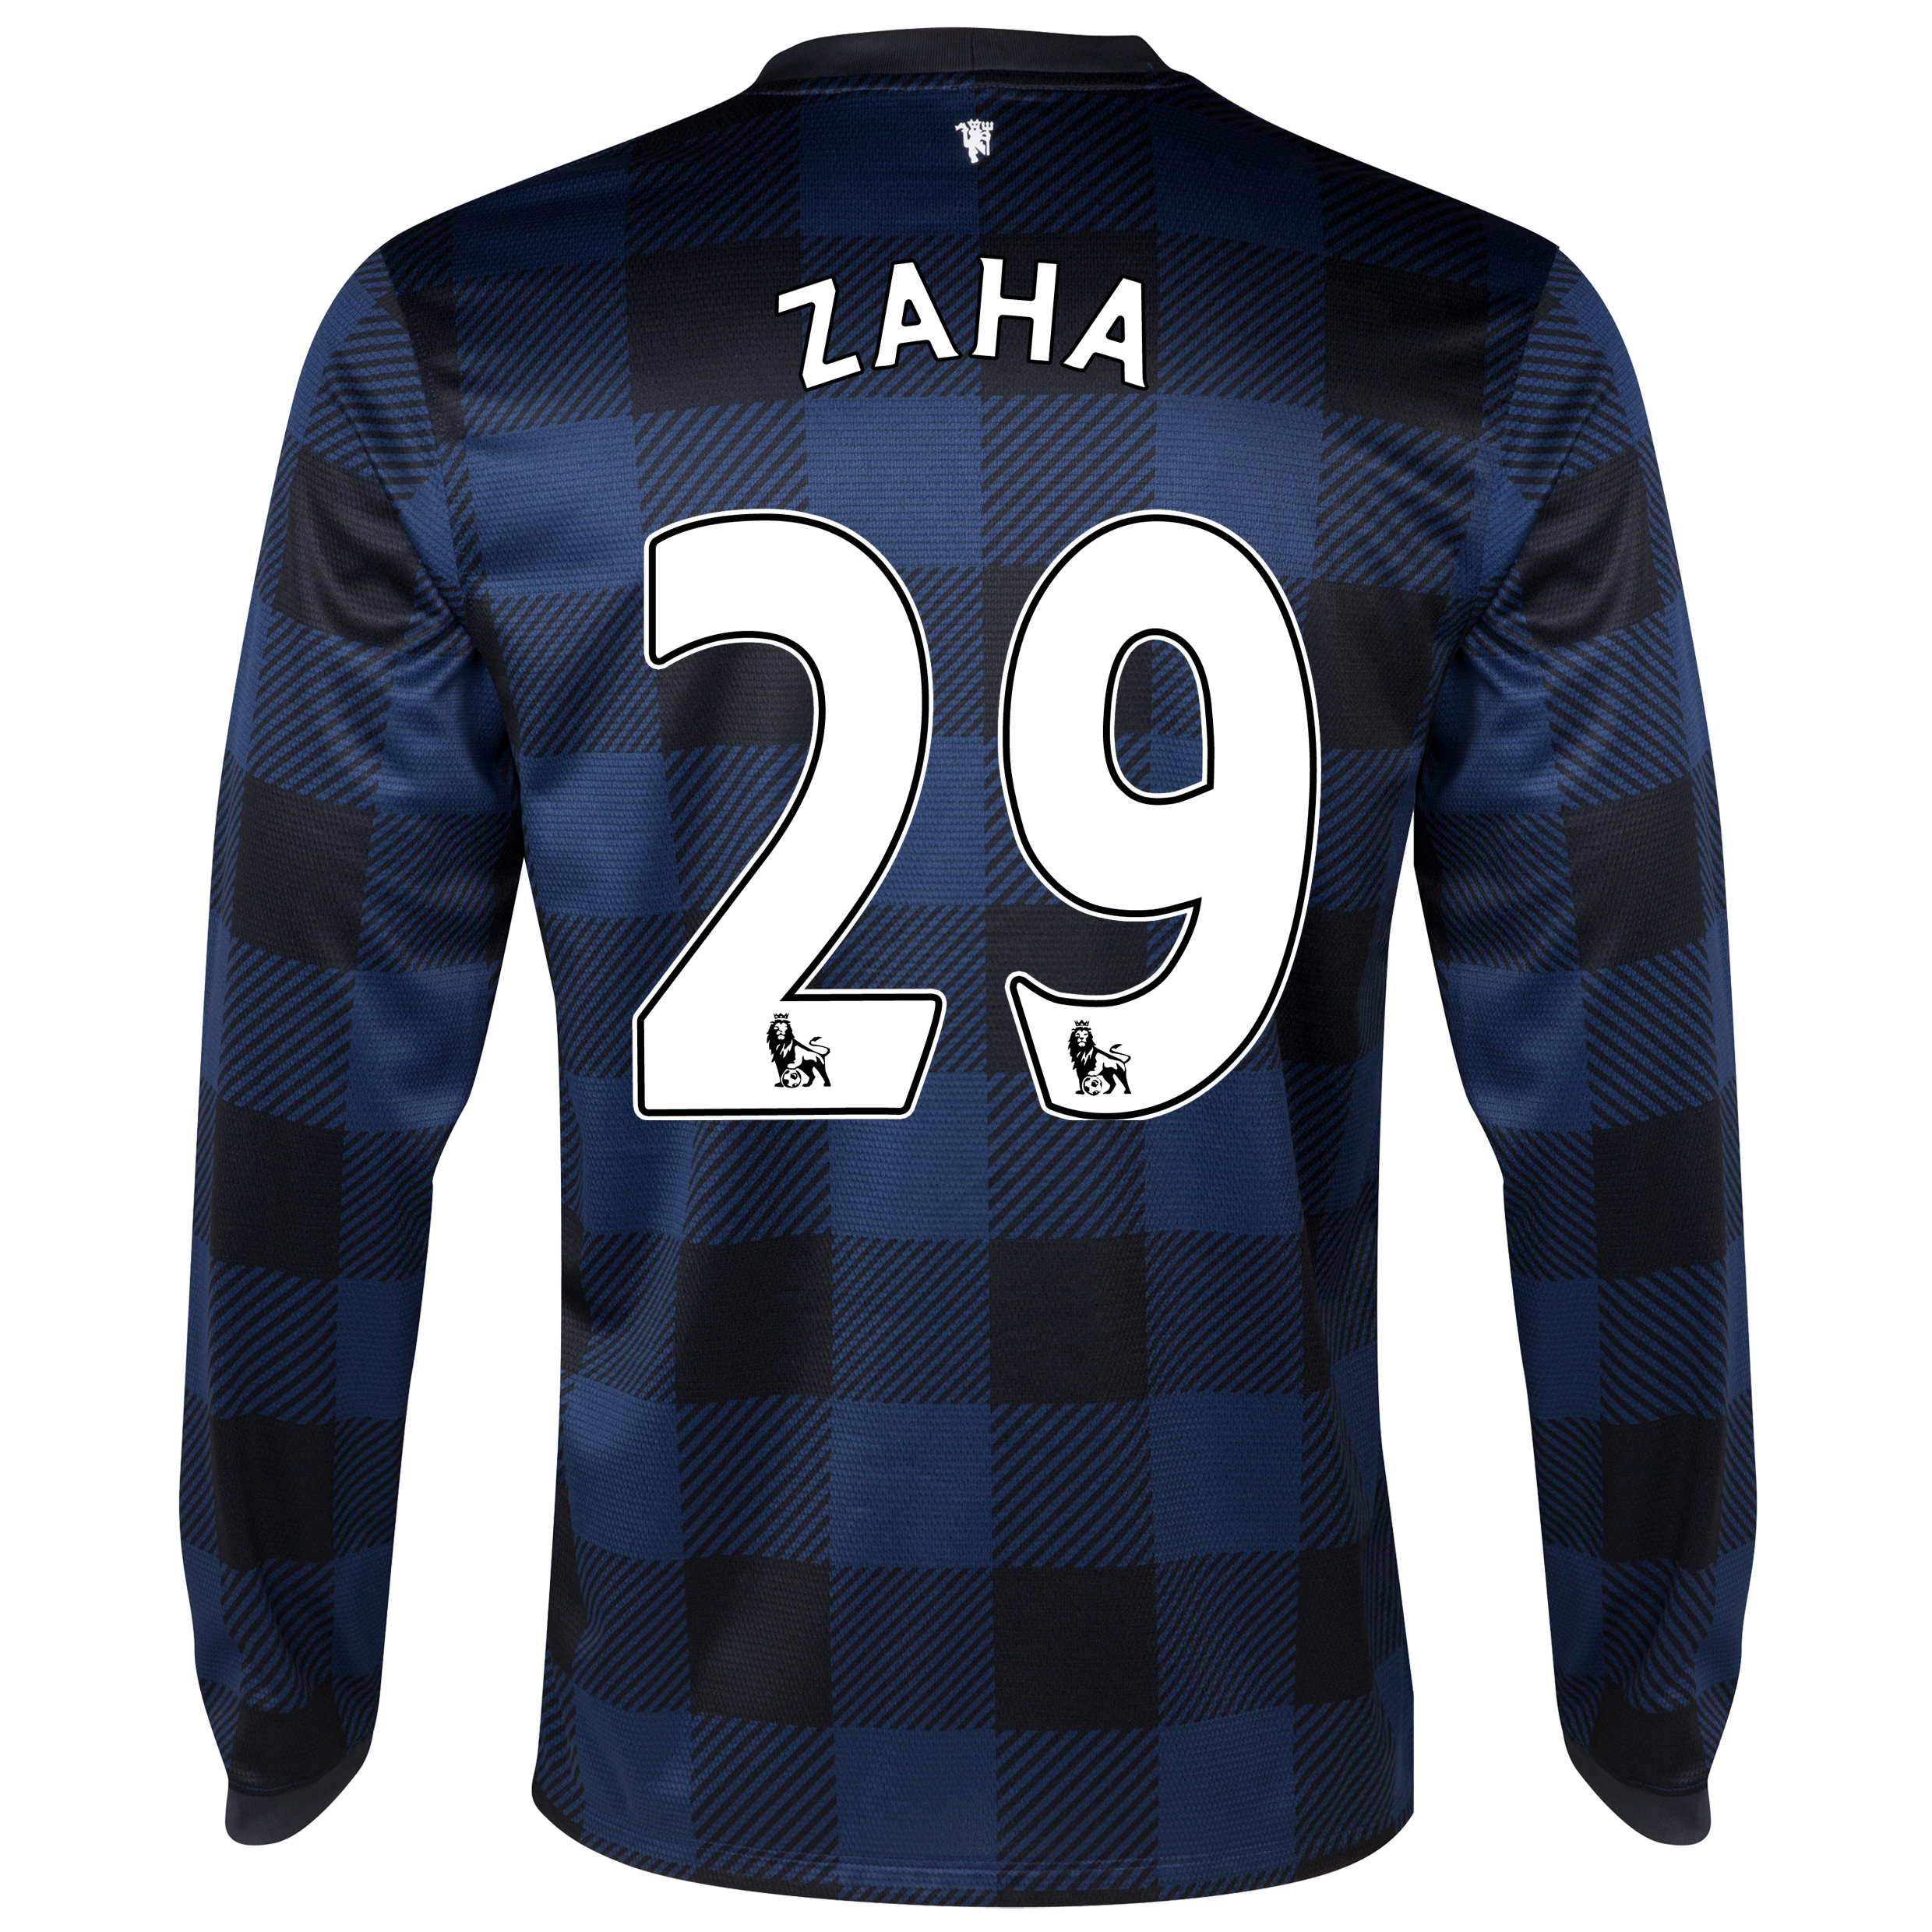 Manchester United Away Shirt 2013/14 - Long Sleeved - Kids with Zaha 29 printing